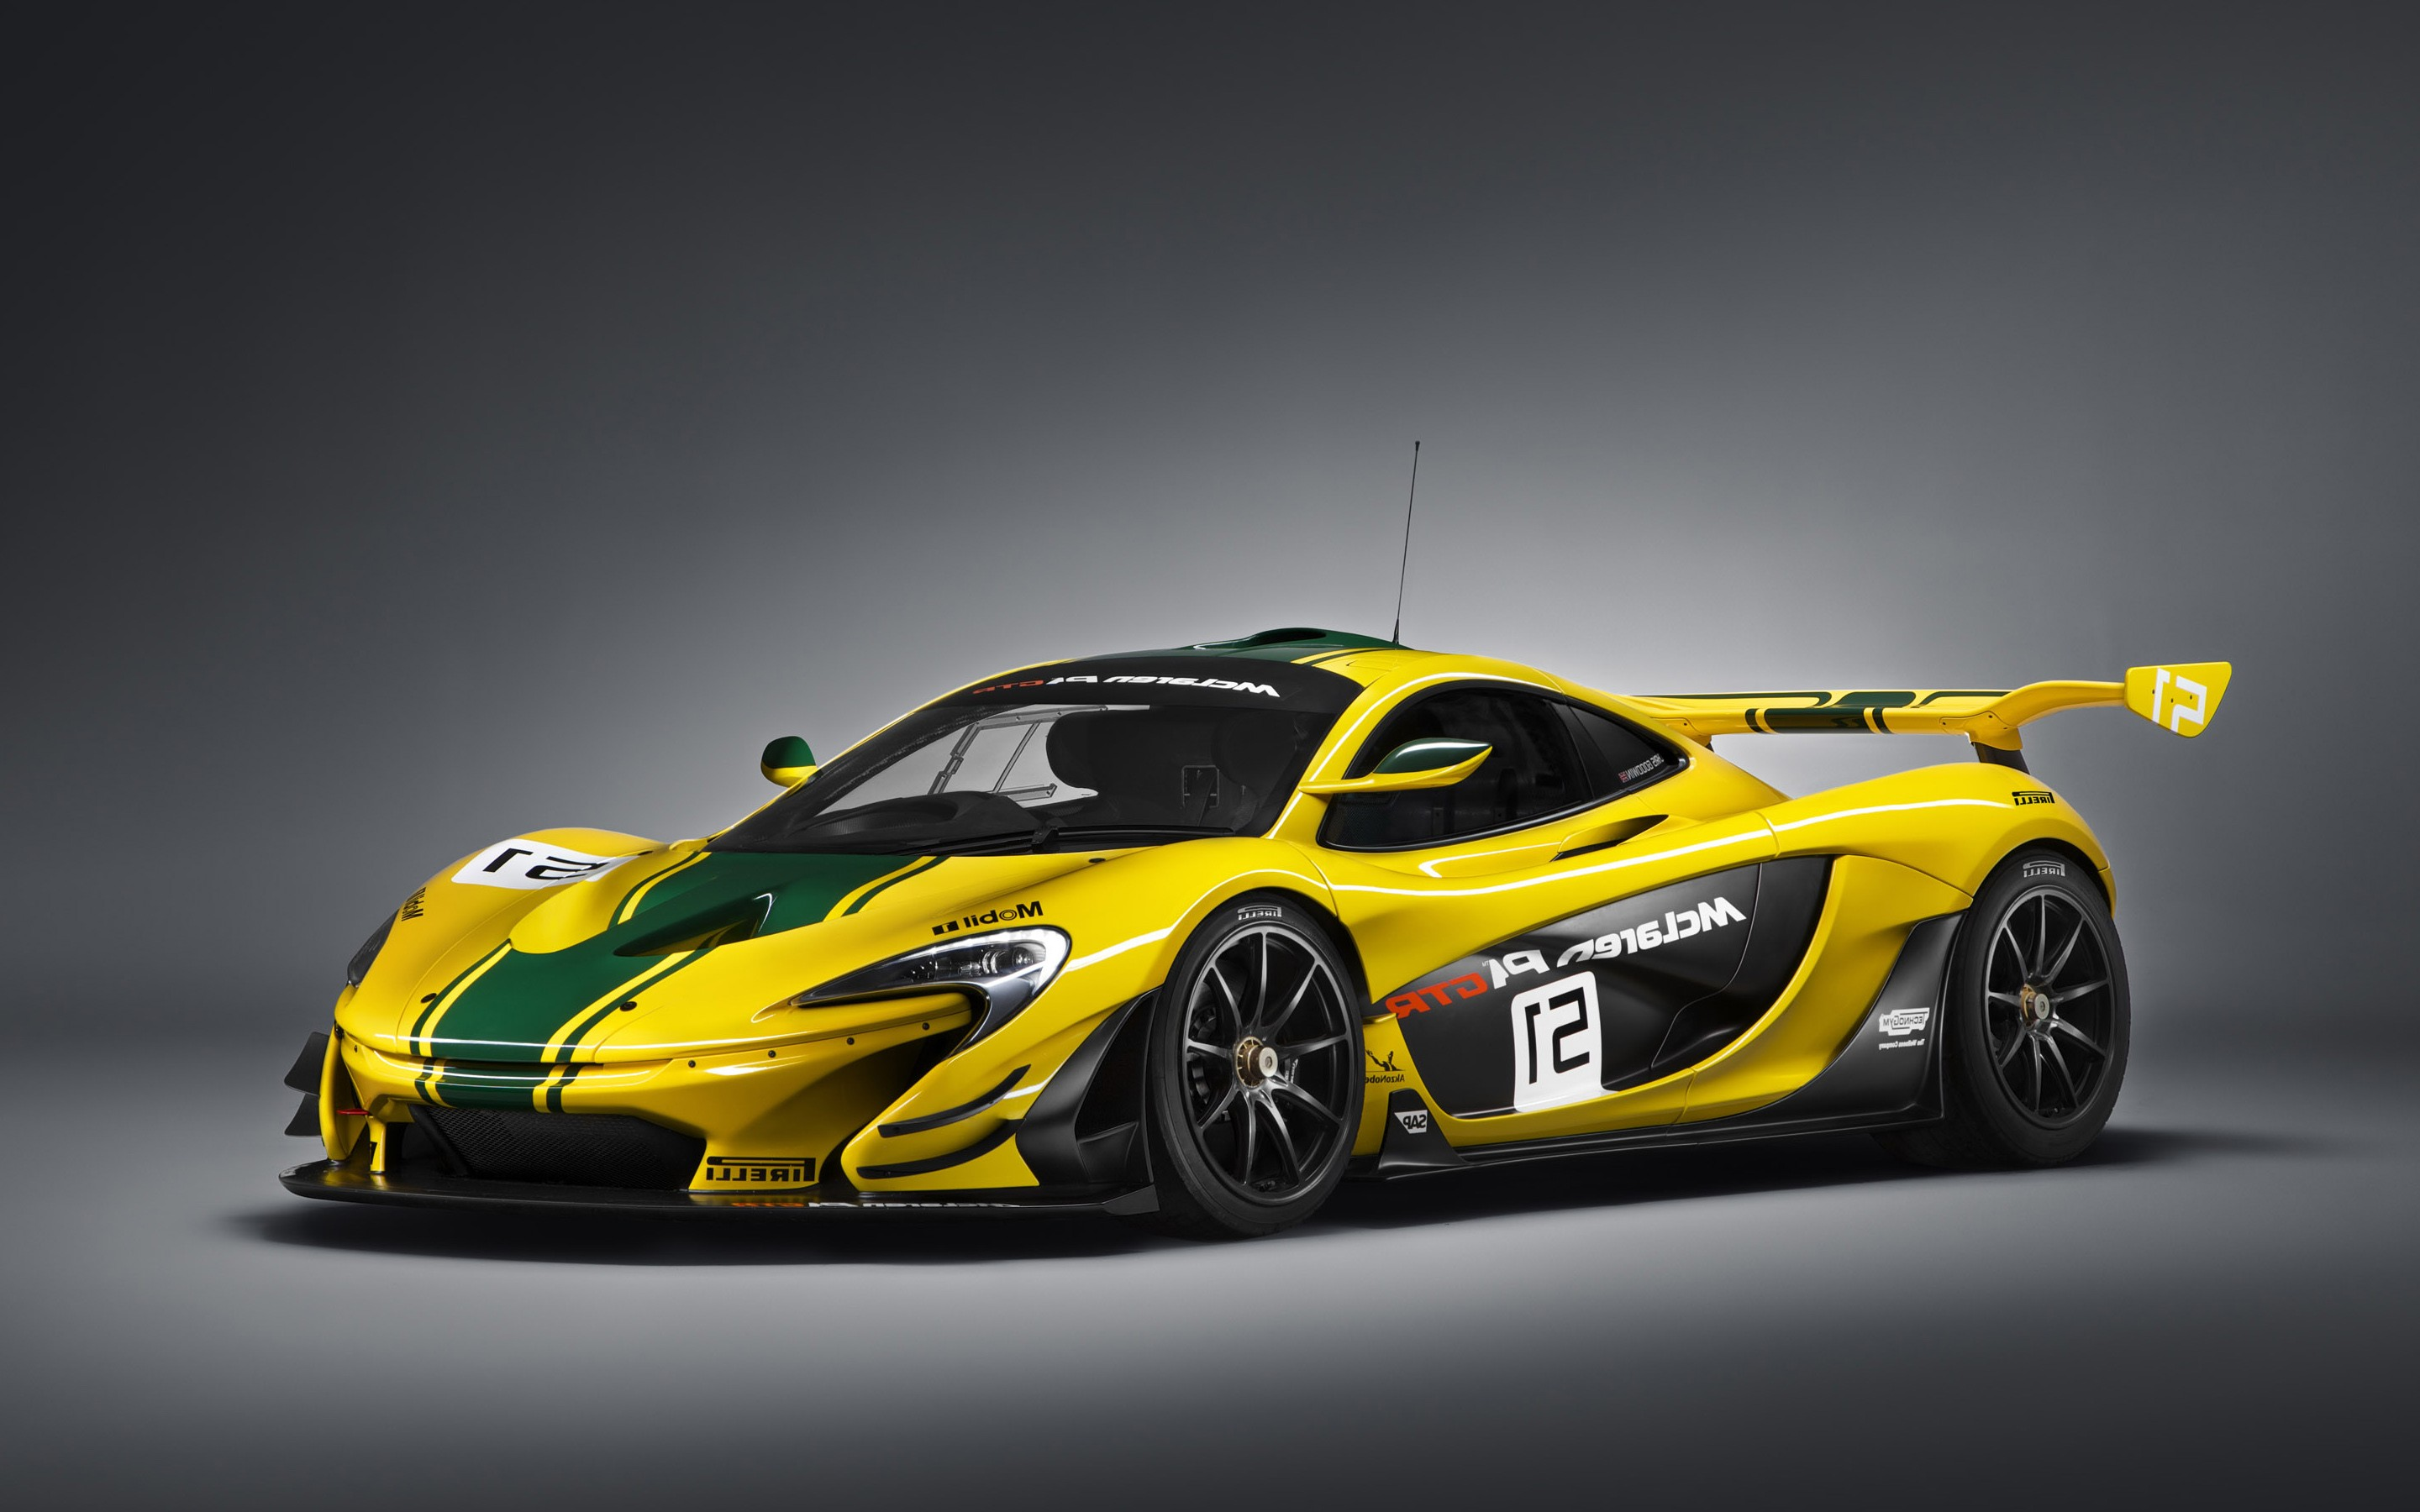 mclaren p1 gtr hd cars 4k wallpapers images